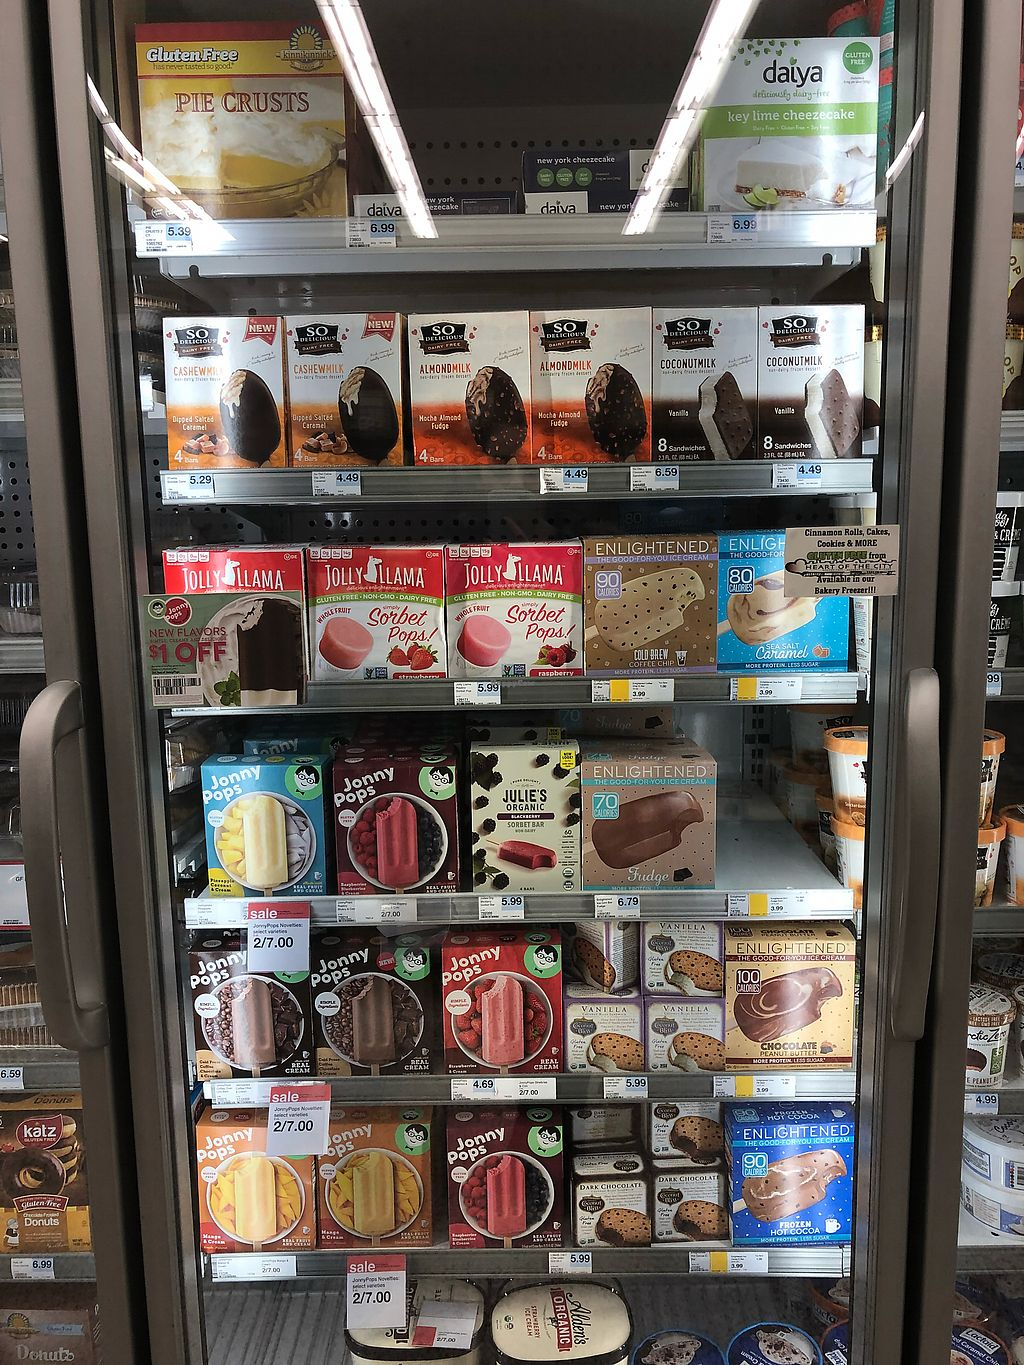 "Photo of Hy-Vee  by <a href=""/members/profile/Jadediana"">Jadediana</a> <br/>Treats! Includes some fruit options, Ben and jerry, so delicious, Daiya treats <br/> April 14, 2018  - <a href='/contact/abuse/image/116860/385506'>Report</a>"